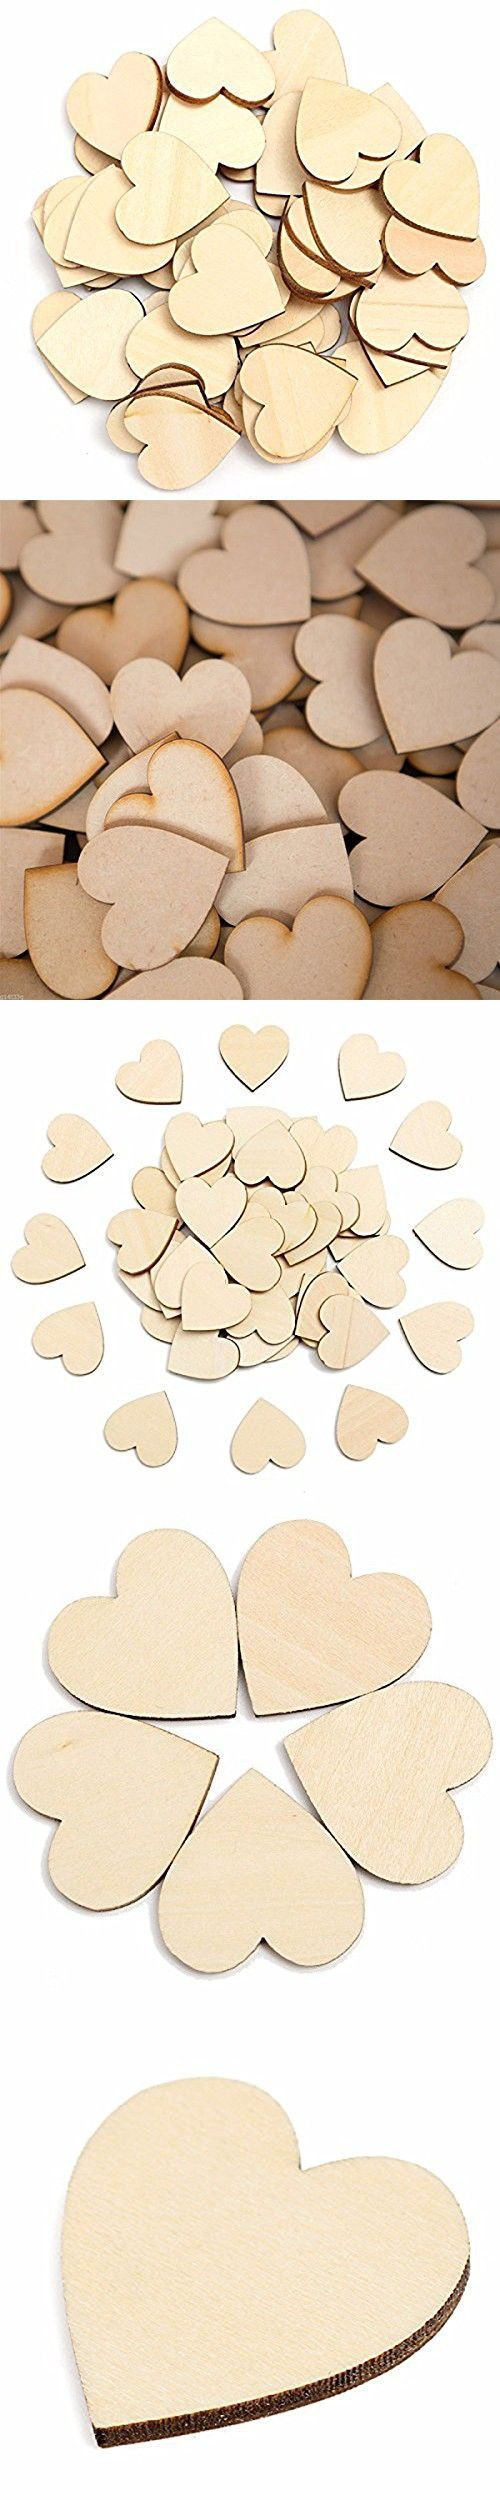 Wedding ornaments - Fenical Wood Discs 6cm Heart Wood Diy Slices Natural Birch Tree For Wedding Christmas Ornaments 50pcs